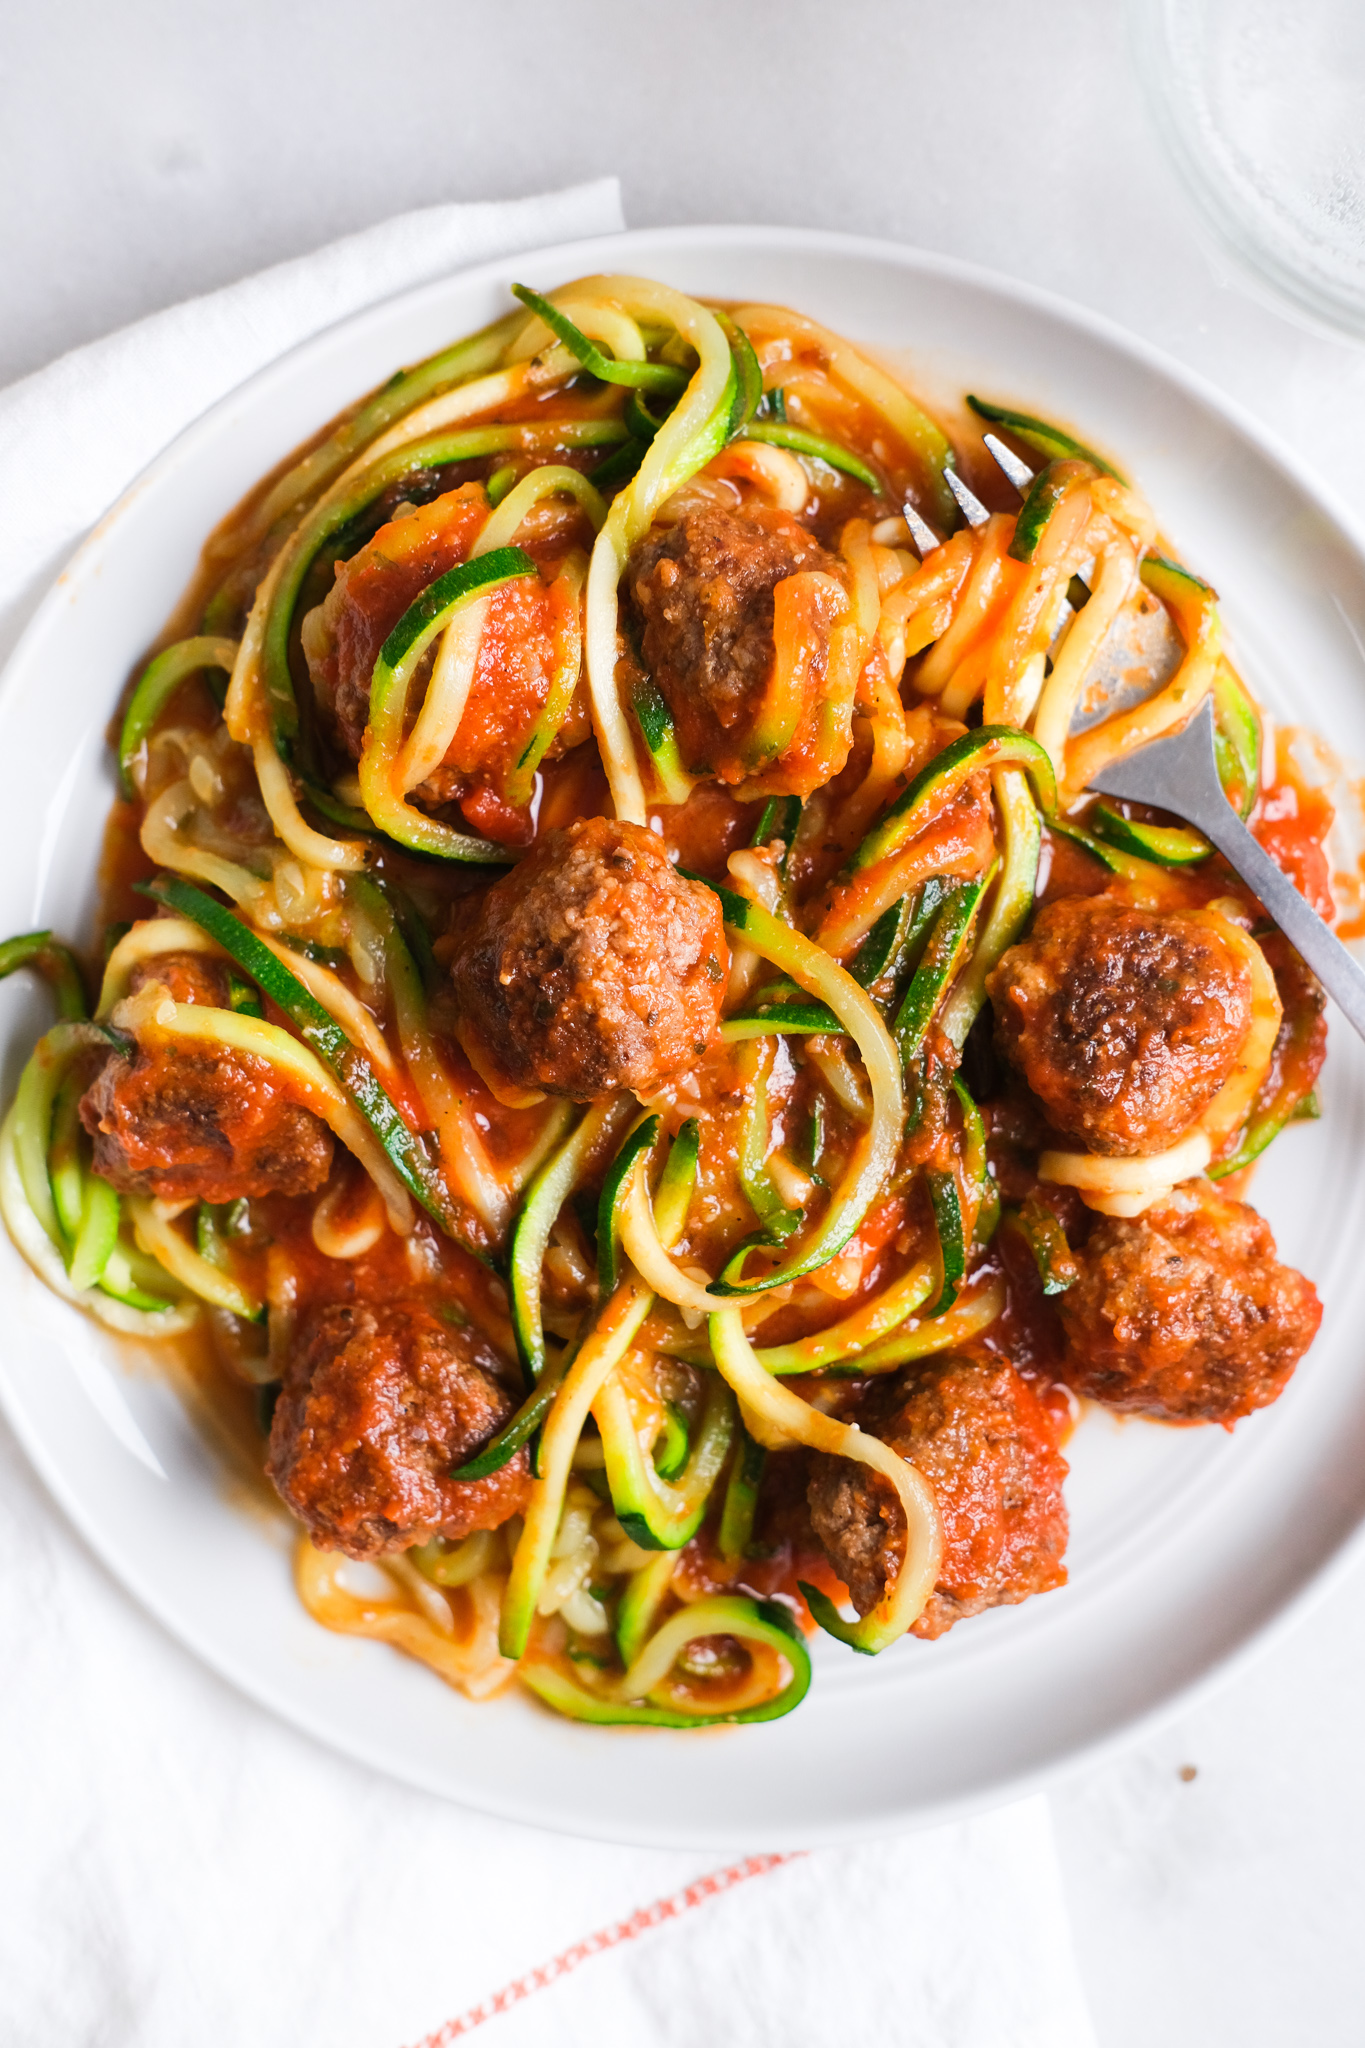 bowl of zoodles with meatballs and red sauce